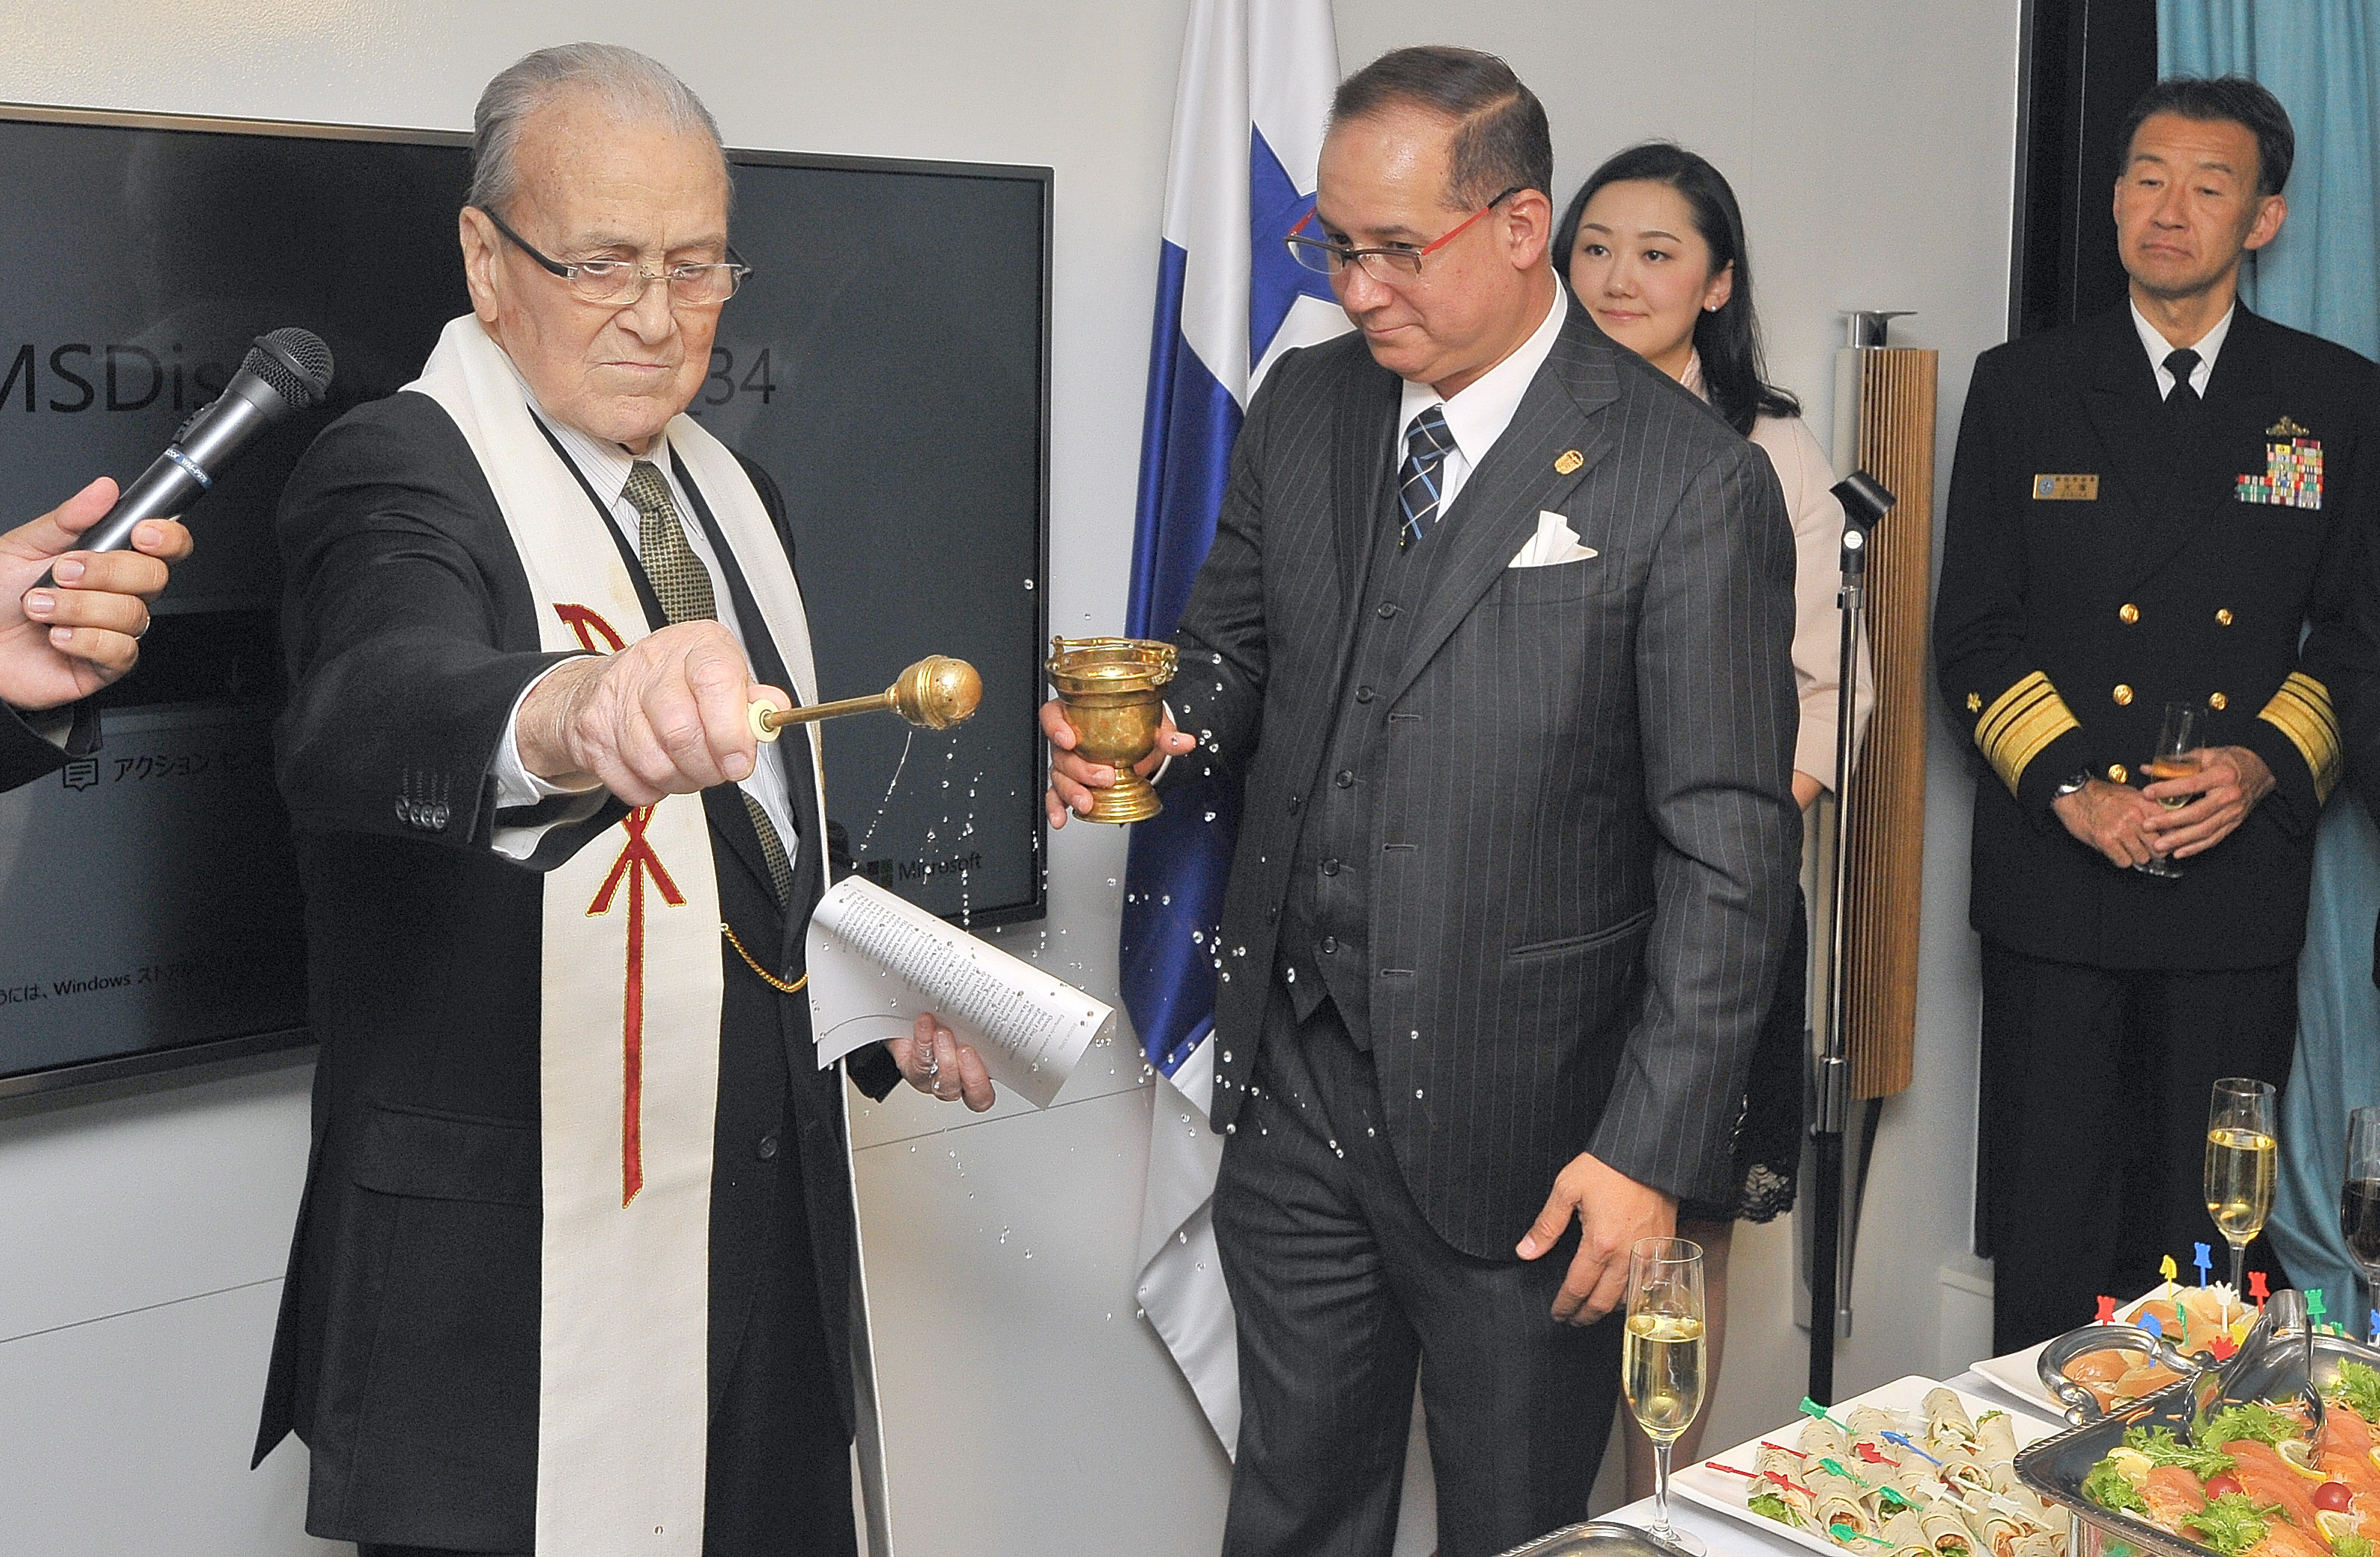 The Farther Arturo Martin, blessing the Holy Water for the new offices